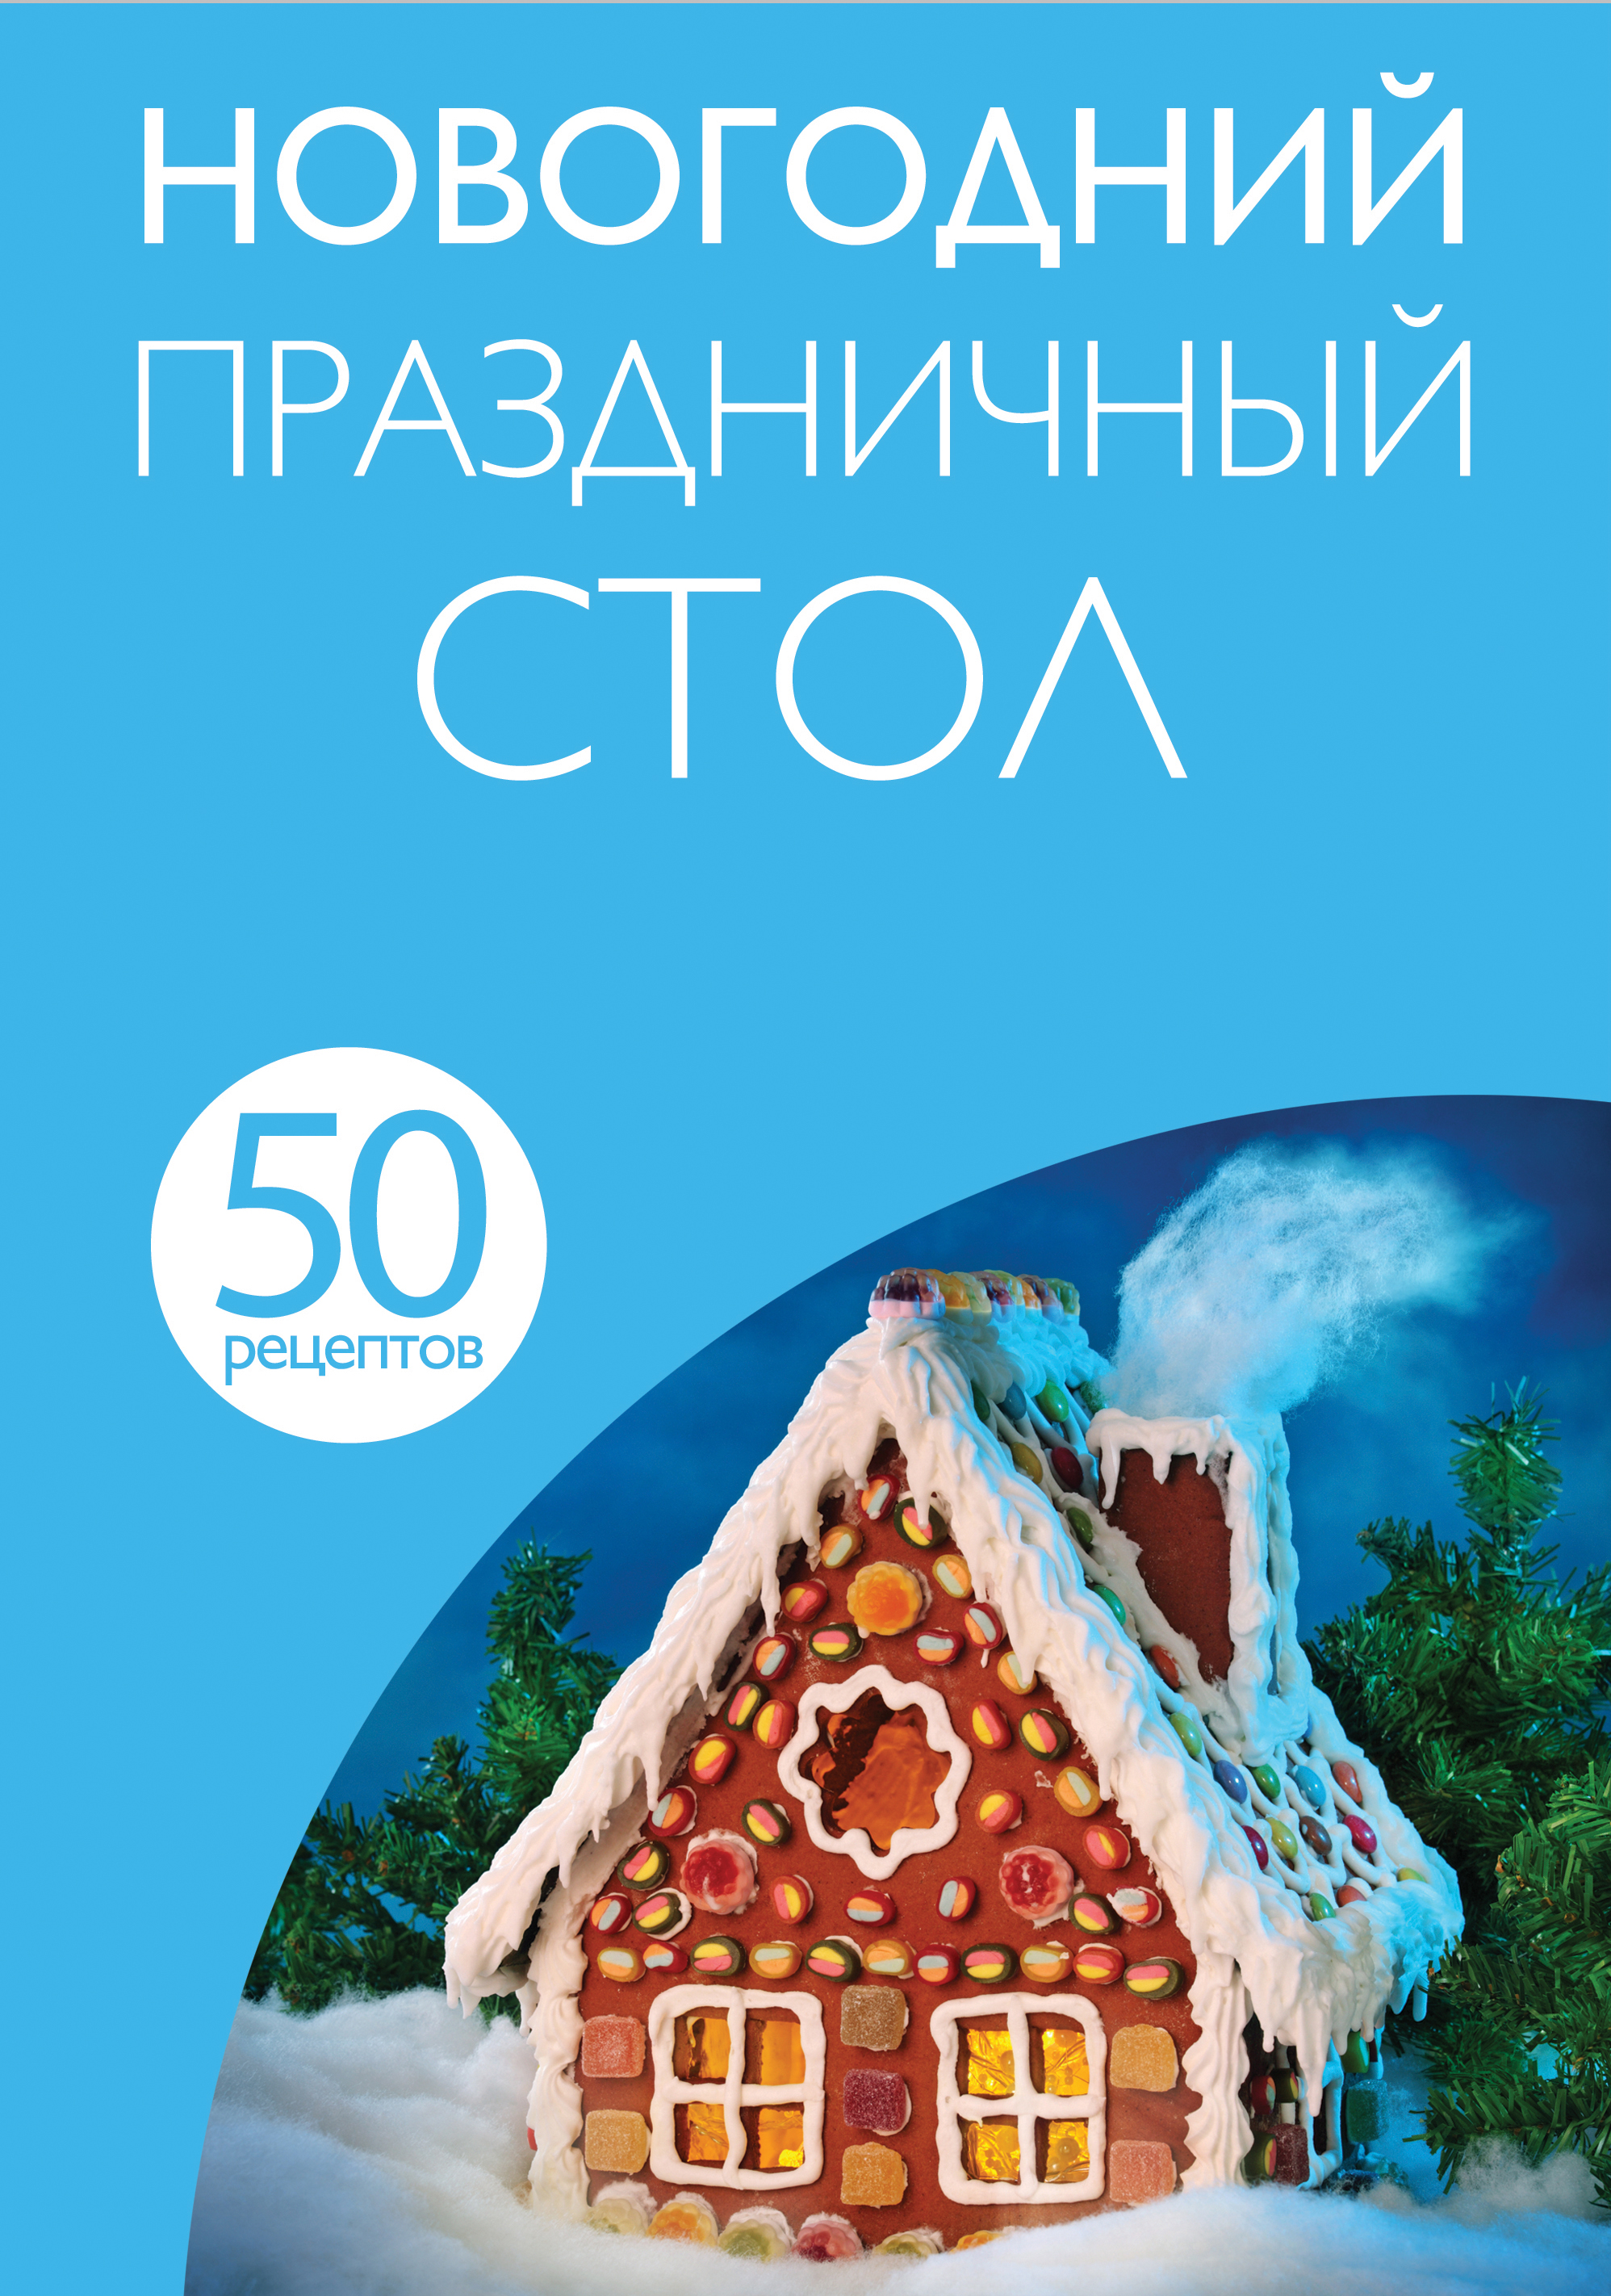 50 рецептов. Новогодний праздничный стол ISBN: 978-5-699-75049-8 mz15 mz17 mz20 mz30 mz35 mz40 mz45 mz50 mz60 mz70 one way clutches sprag bearings overrunning clutch cam clutch reducers clutch